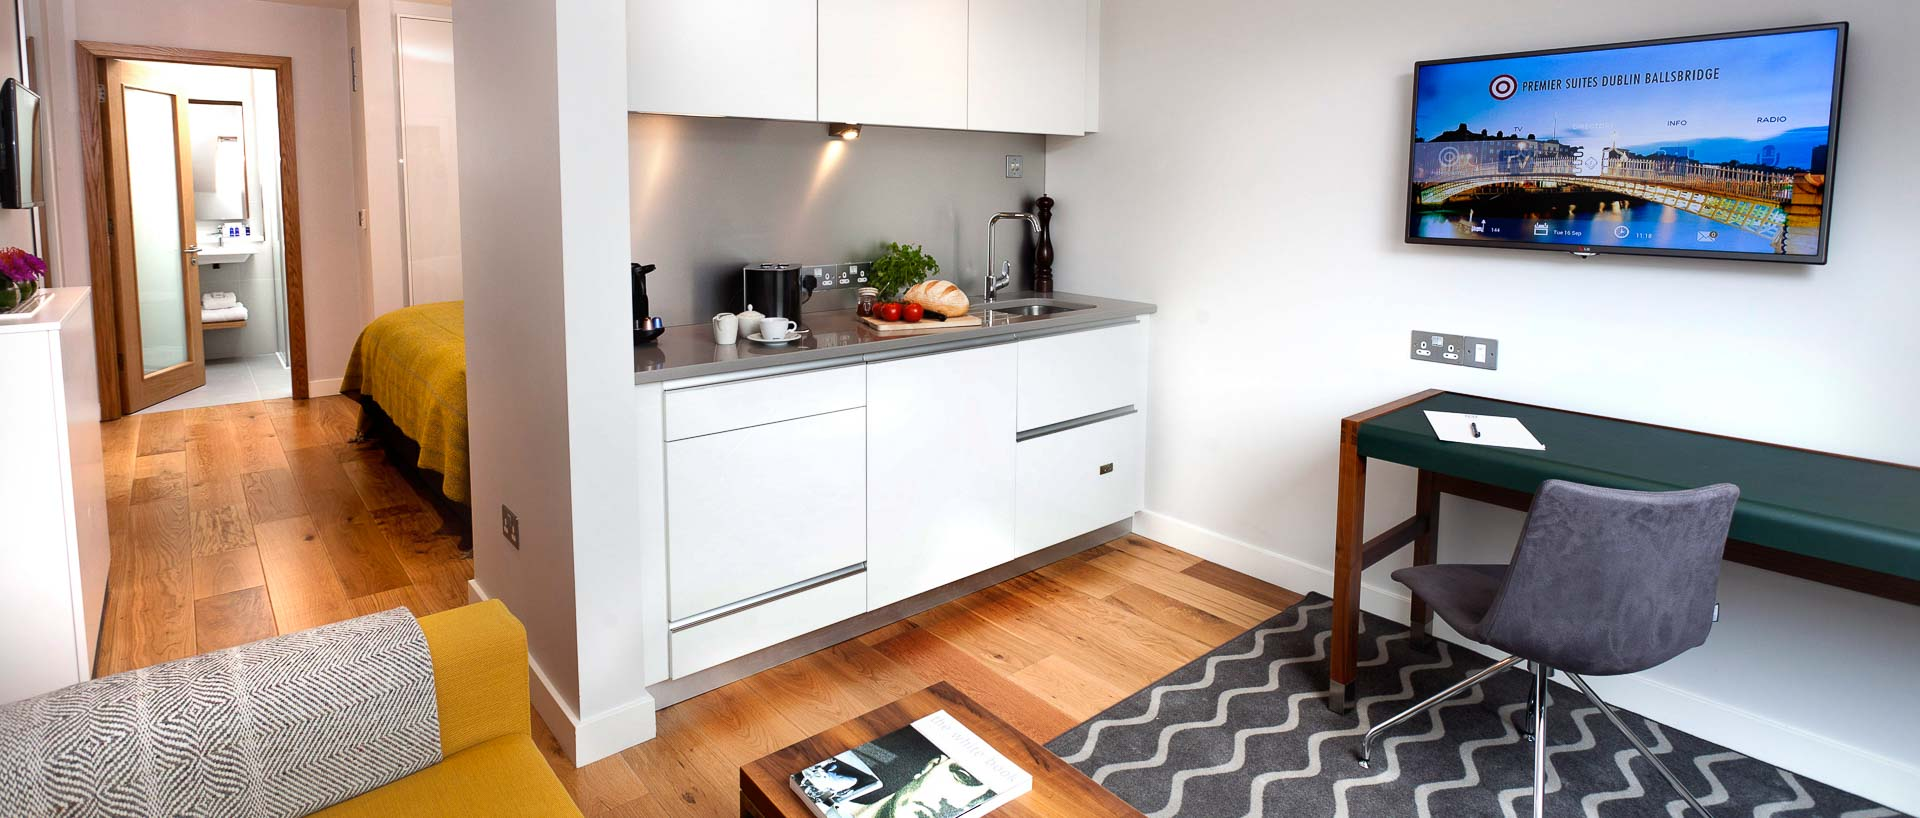 PREMIER SUITES PLUS Dublin Ballsbridge open plan serviced apartment